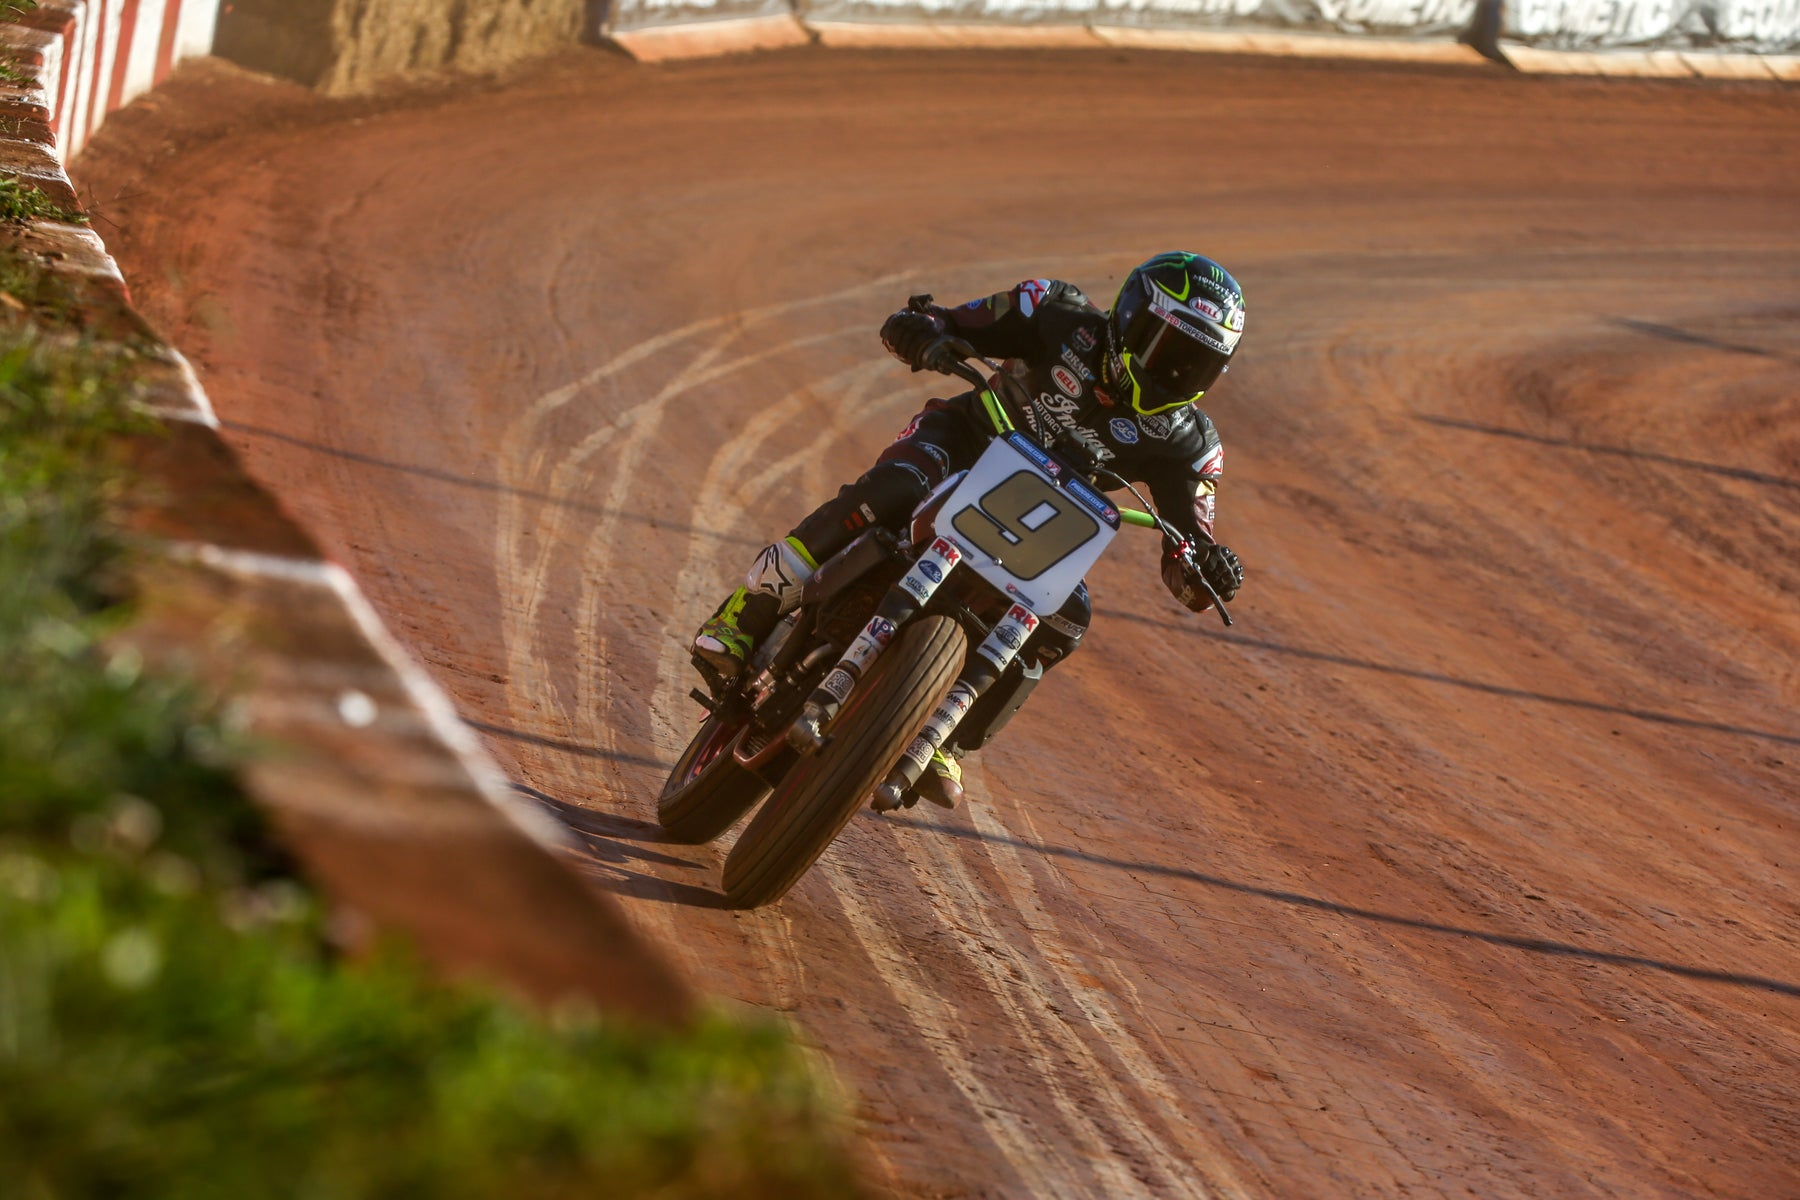 JARED MEES DOES DIXIE DOUBLE AFTER WINNING BOTH AFT FLAT-TRACK FEATURE RACES AT WOODSTOCK, GEORGIA